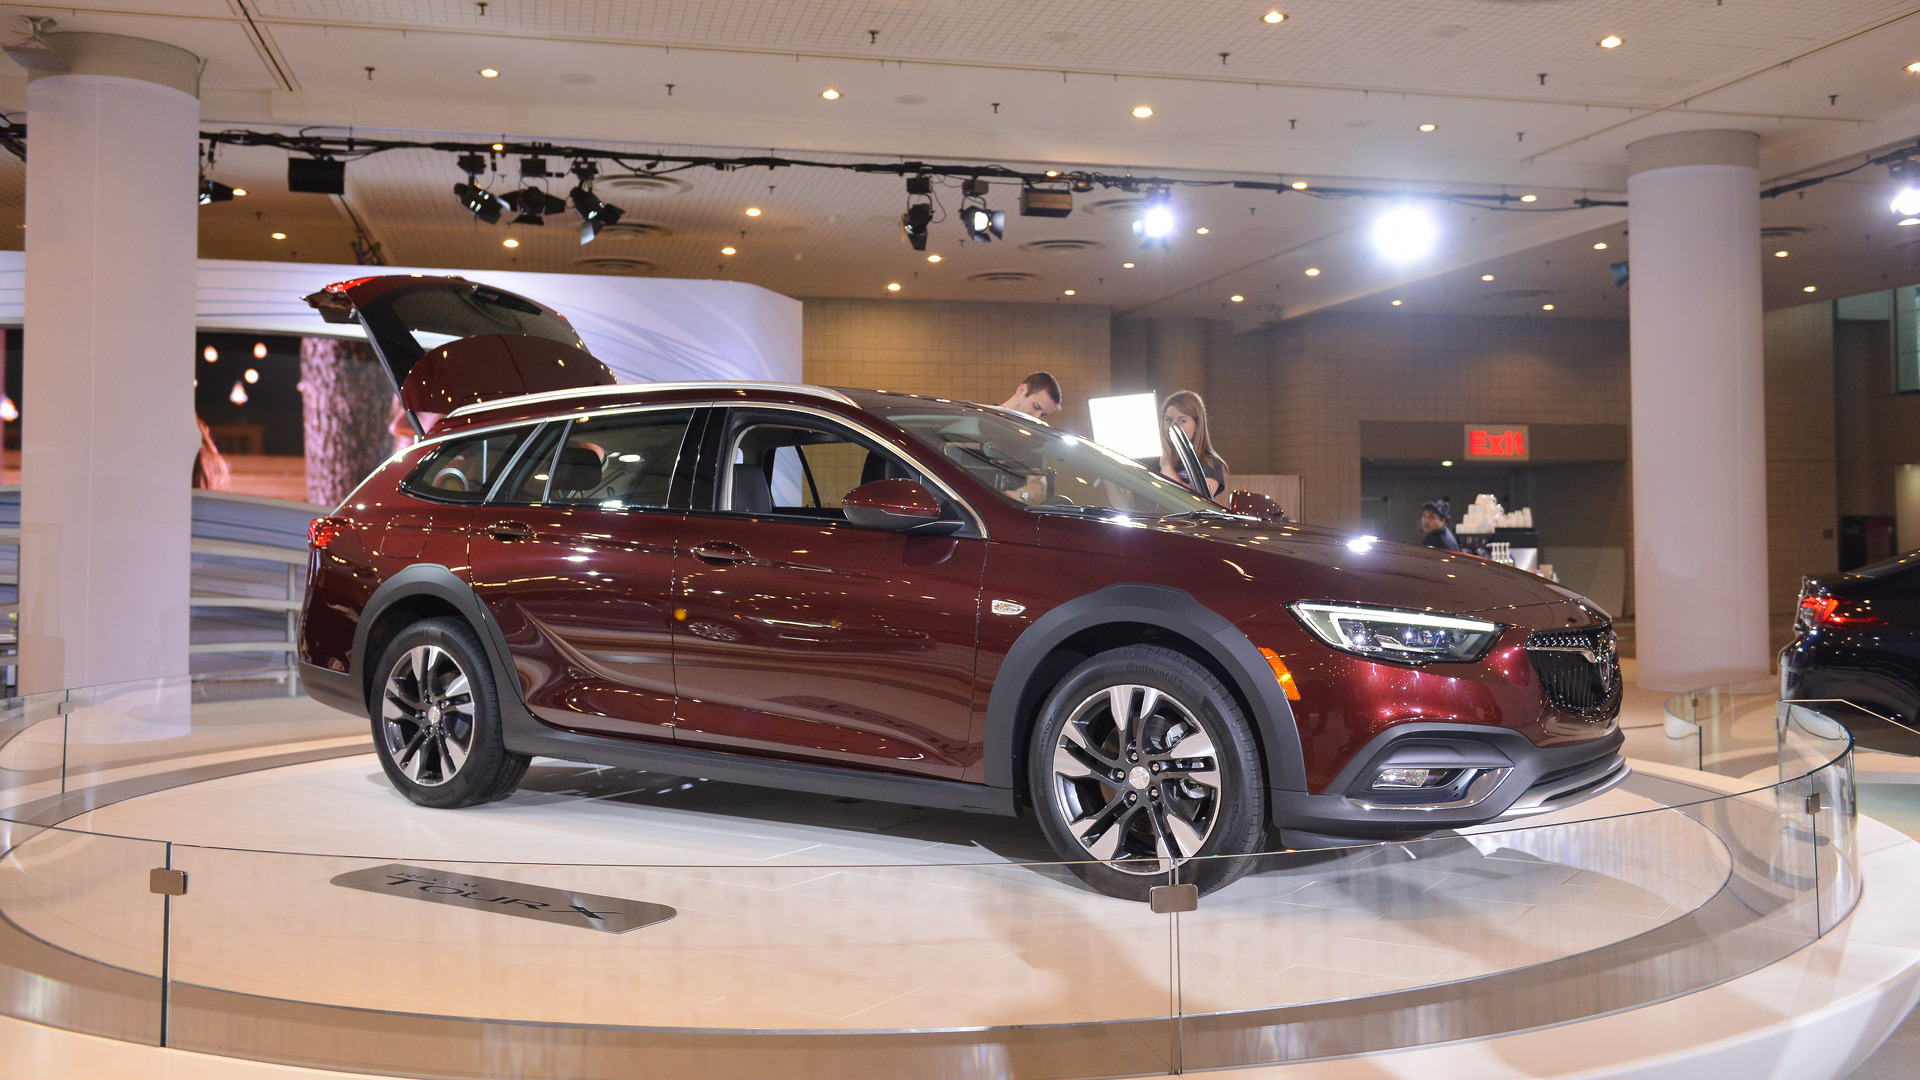 2018 buick regal lands in new york as the american insignia. Black Bedroom Furniture Sets. Home Design Ideas